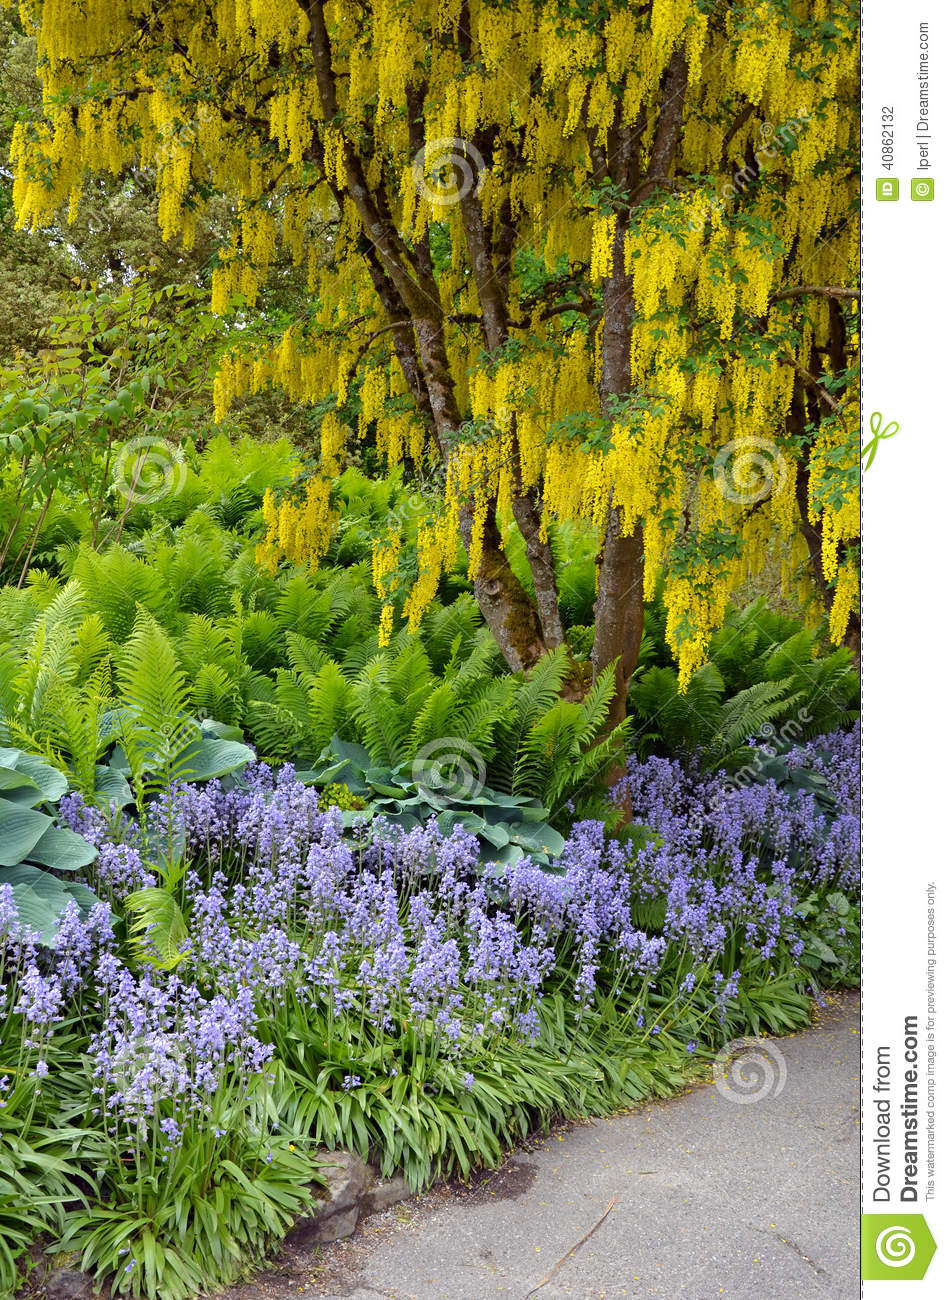 Jardin jaune d 39 arbre de cytise au printemps photo stock for Beaux arbres de jardin